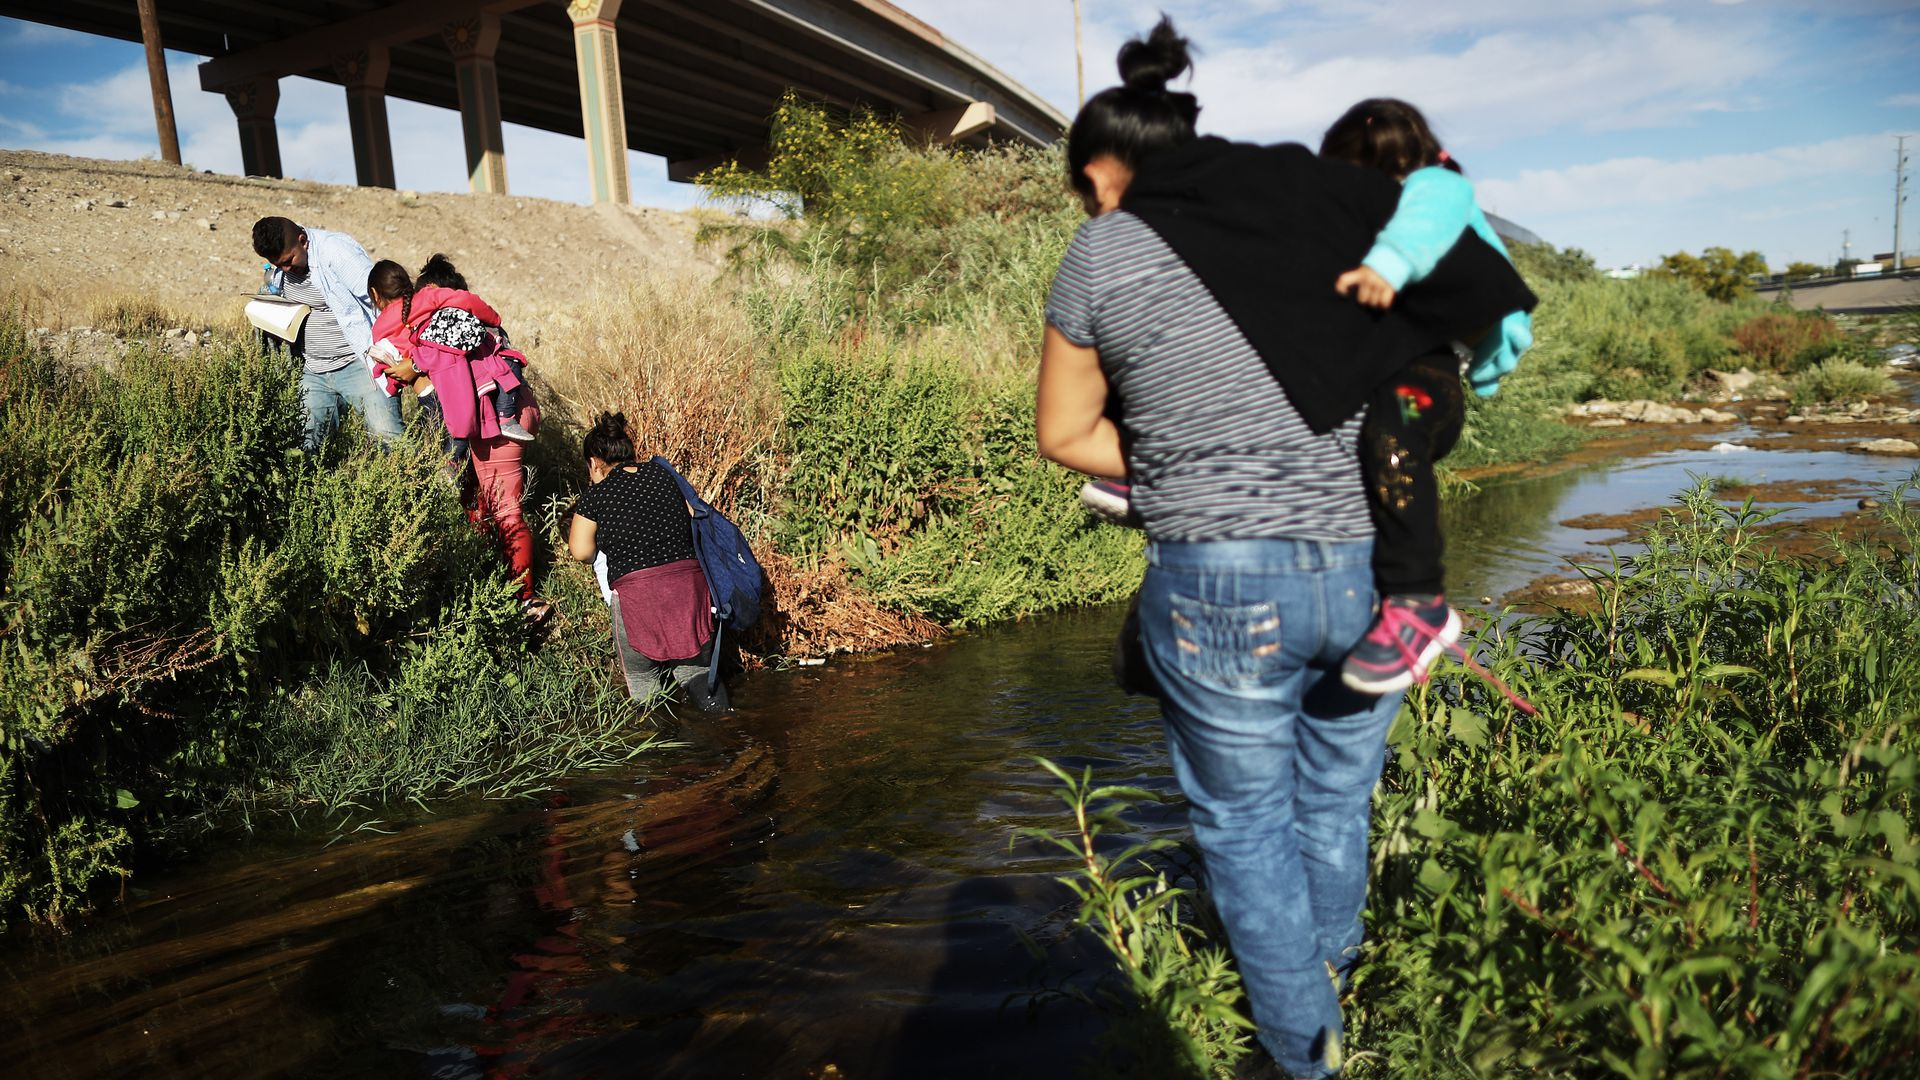 Migrants cross the border between the U.S. and Mexico at the Rio Grande river, as they walk to enter El Paso, Texas,.